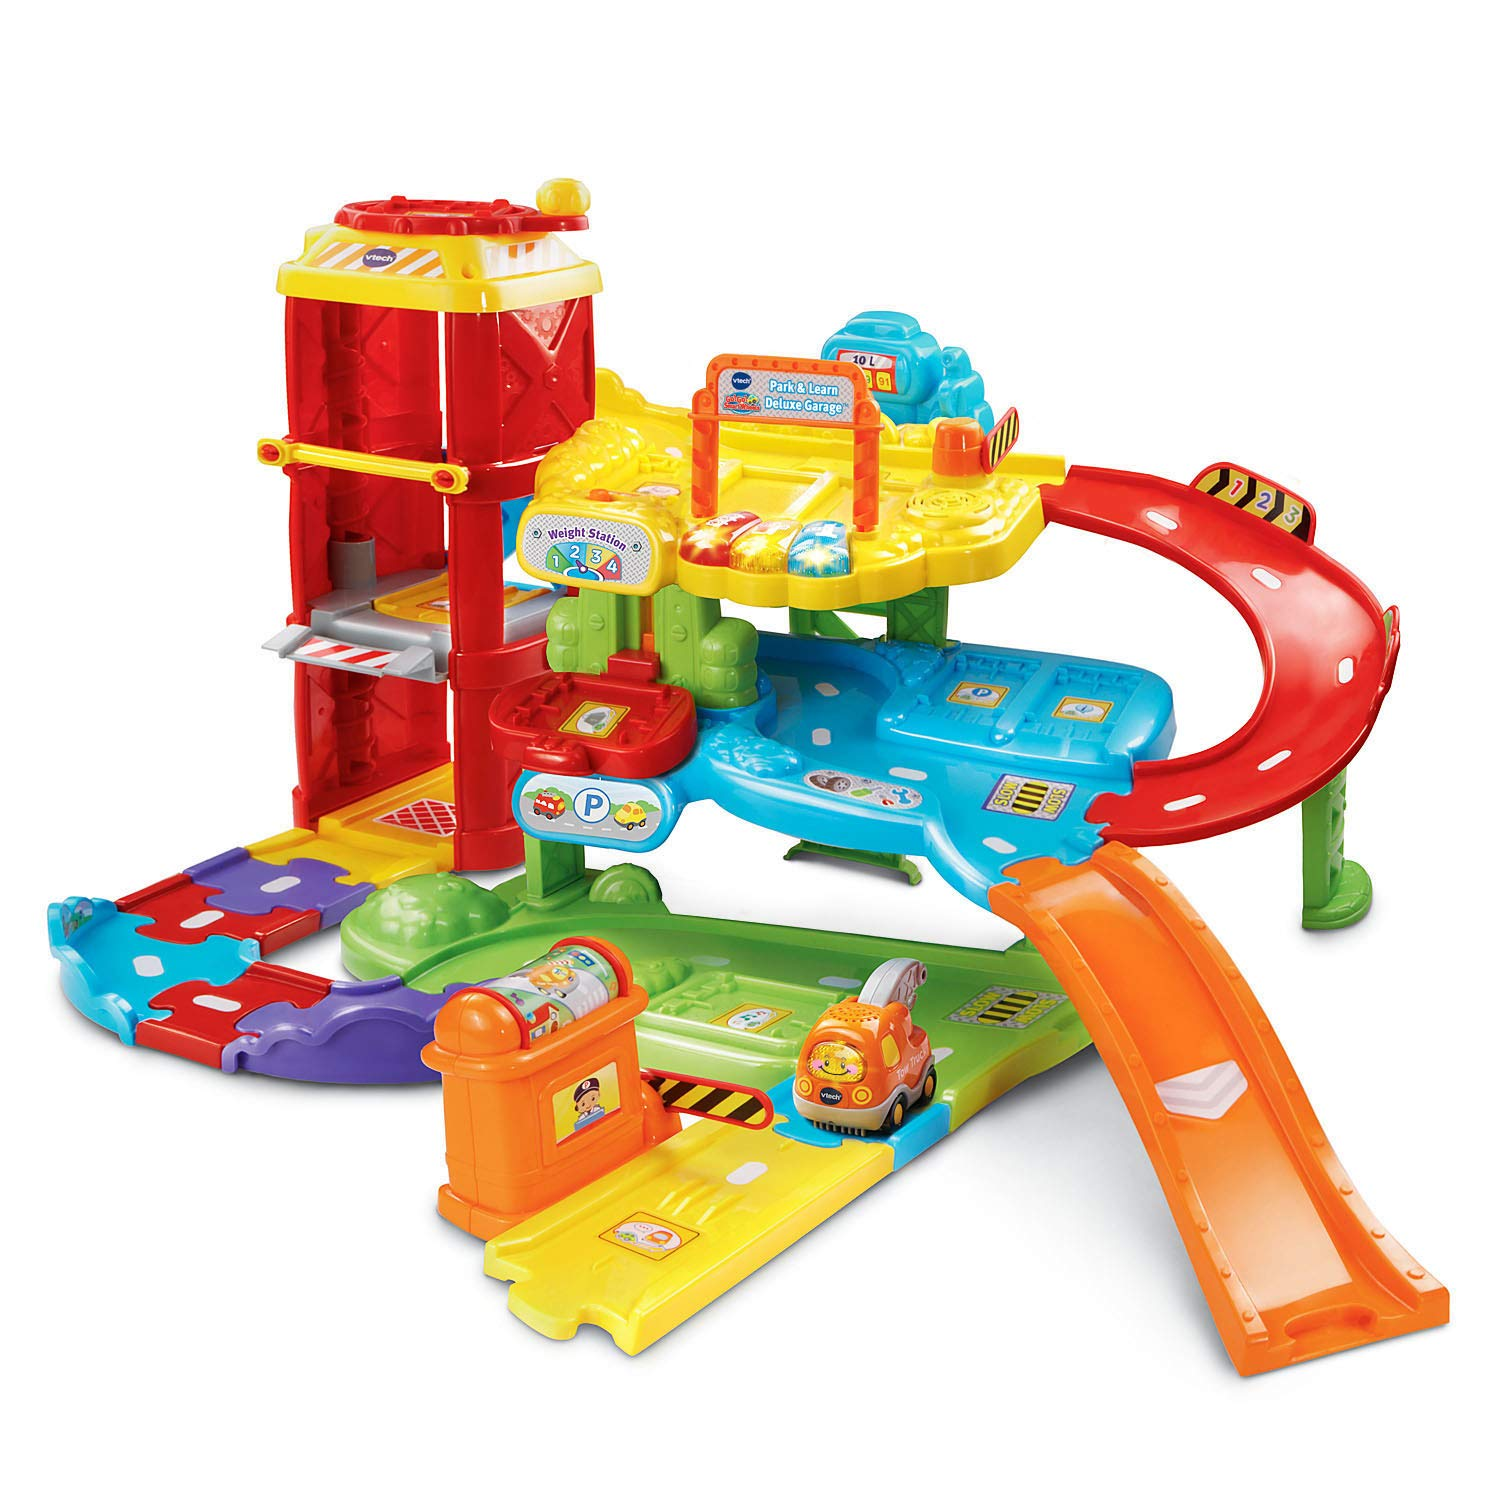 VTech Go! Go! Smart Wheels Park and Learn Deluxe Garage by VTech